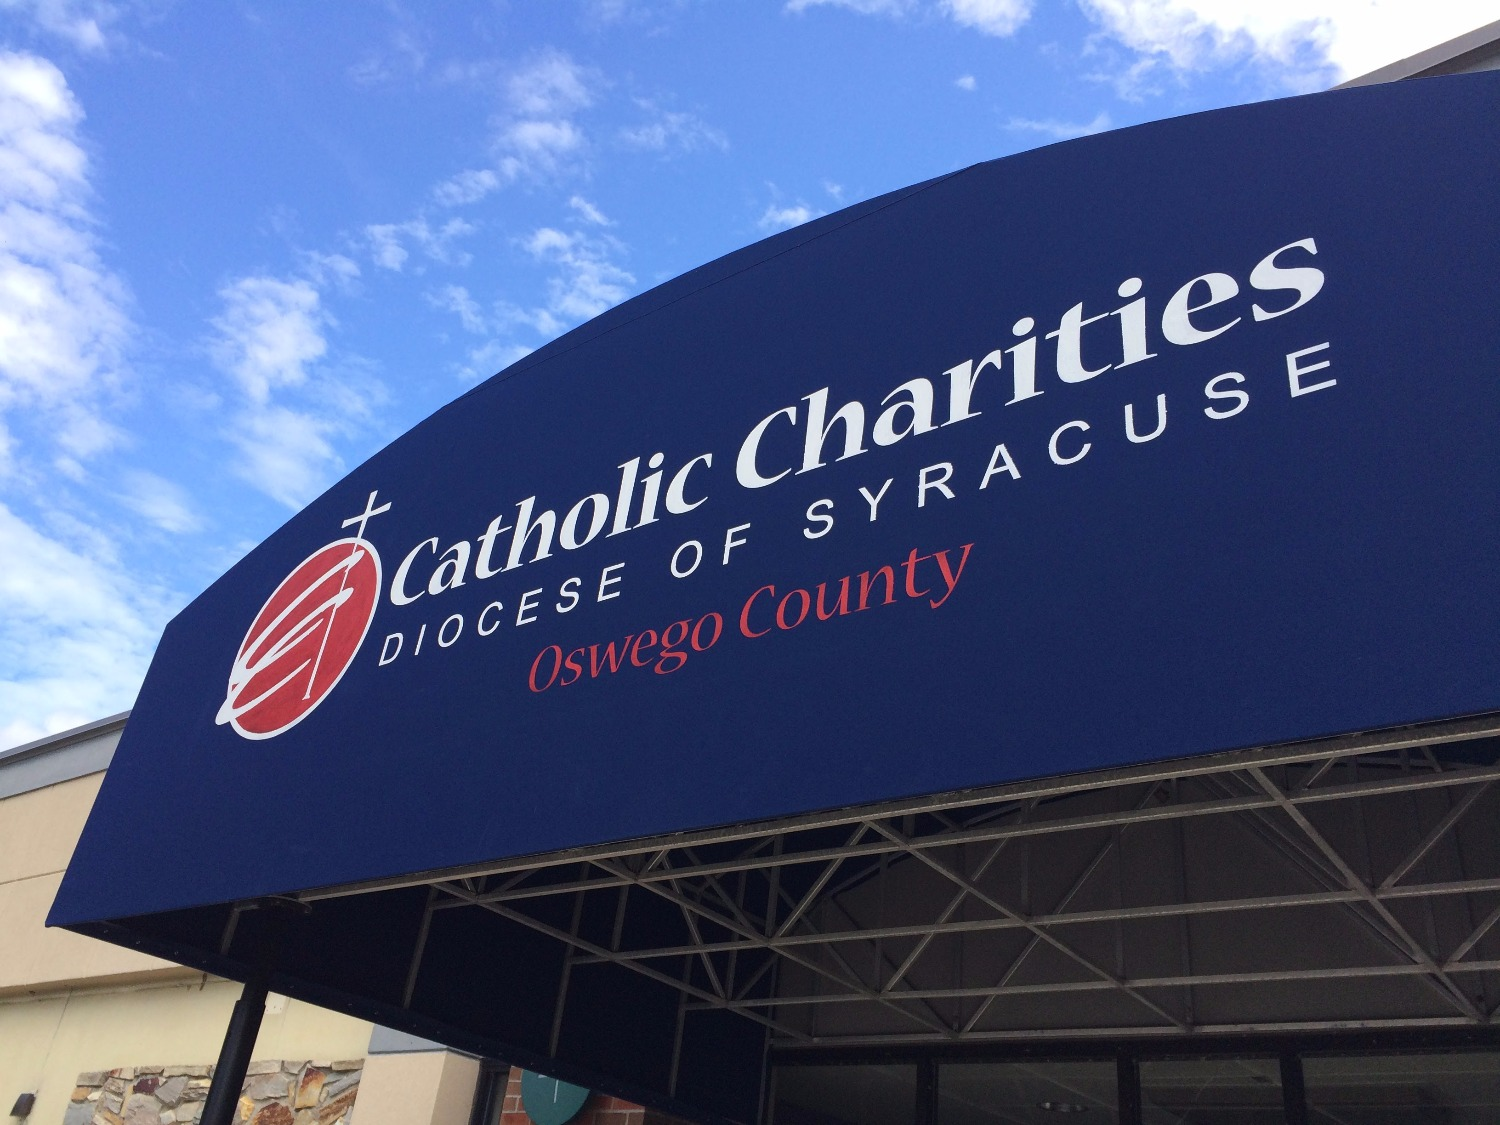 Catholic Charities of Oswego County